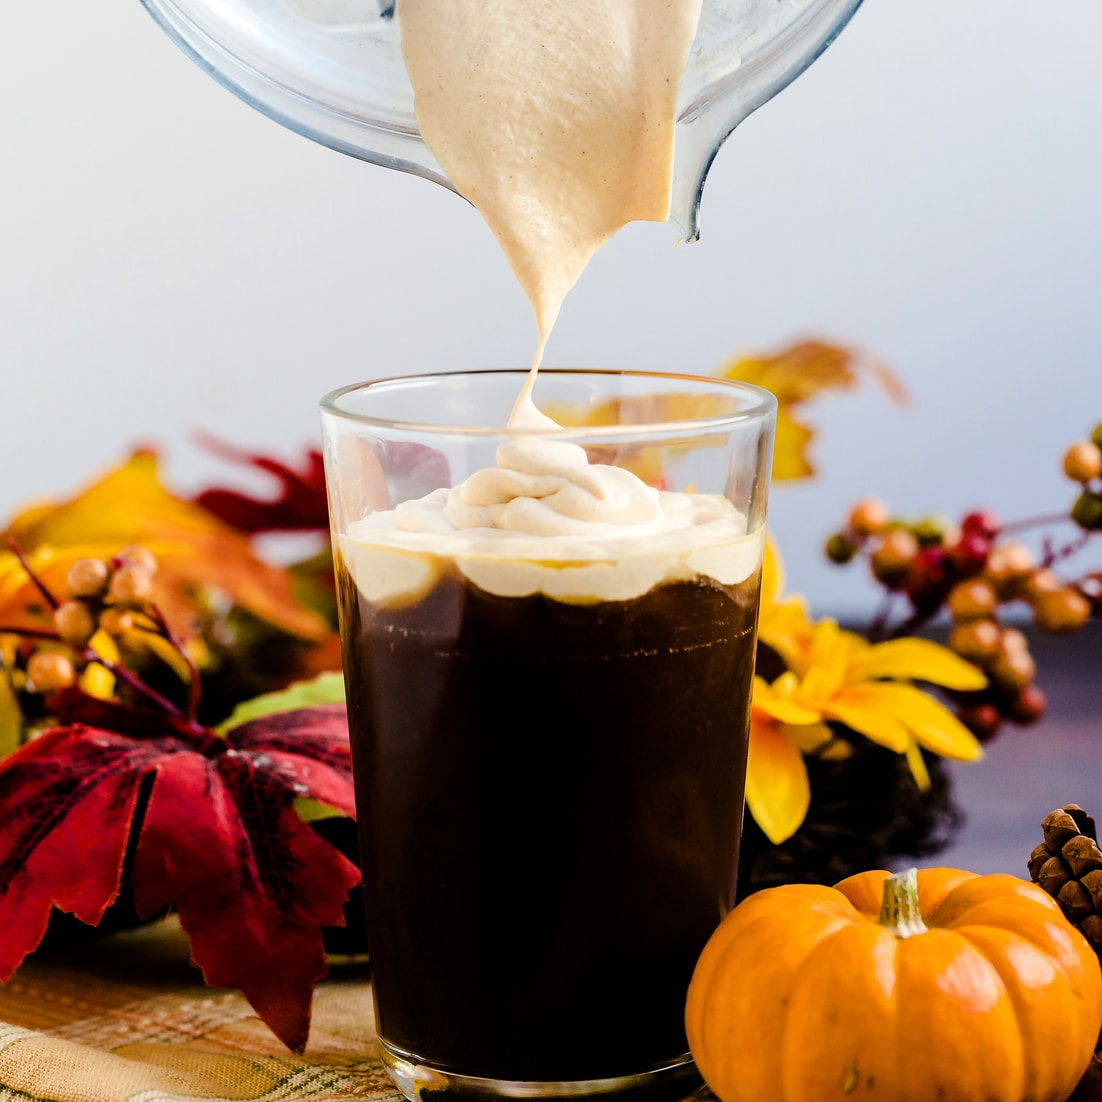 Keto Pumpkin Cream being poured into a glass tumbler